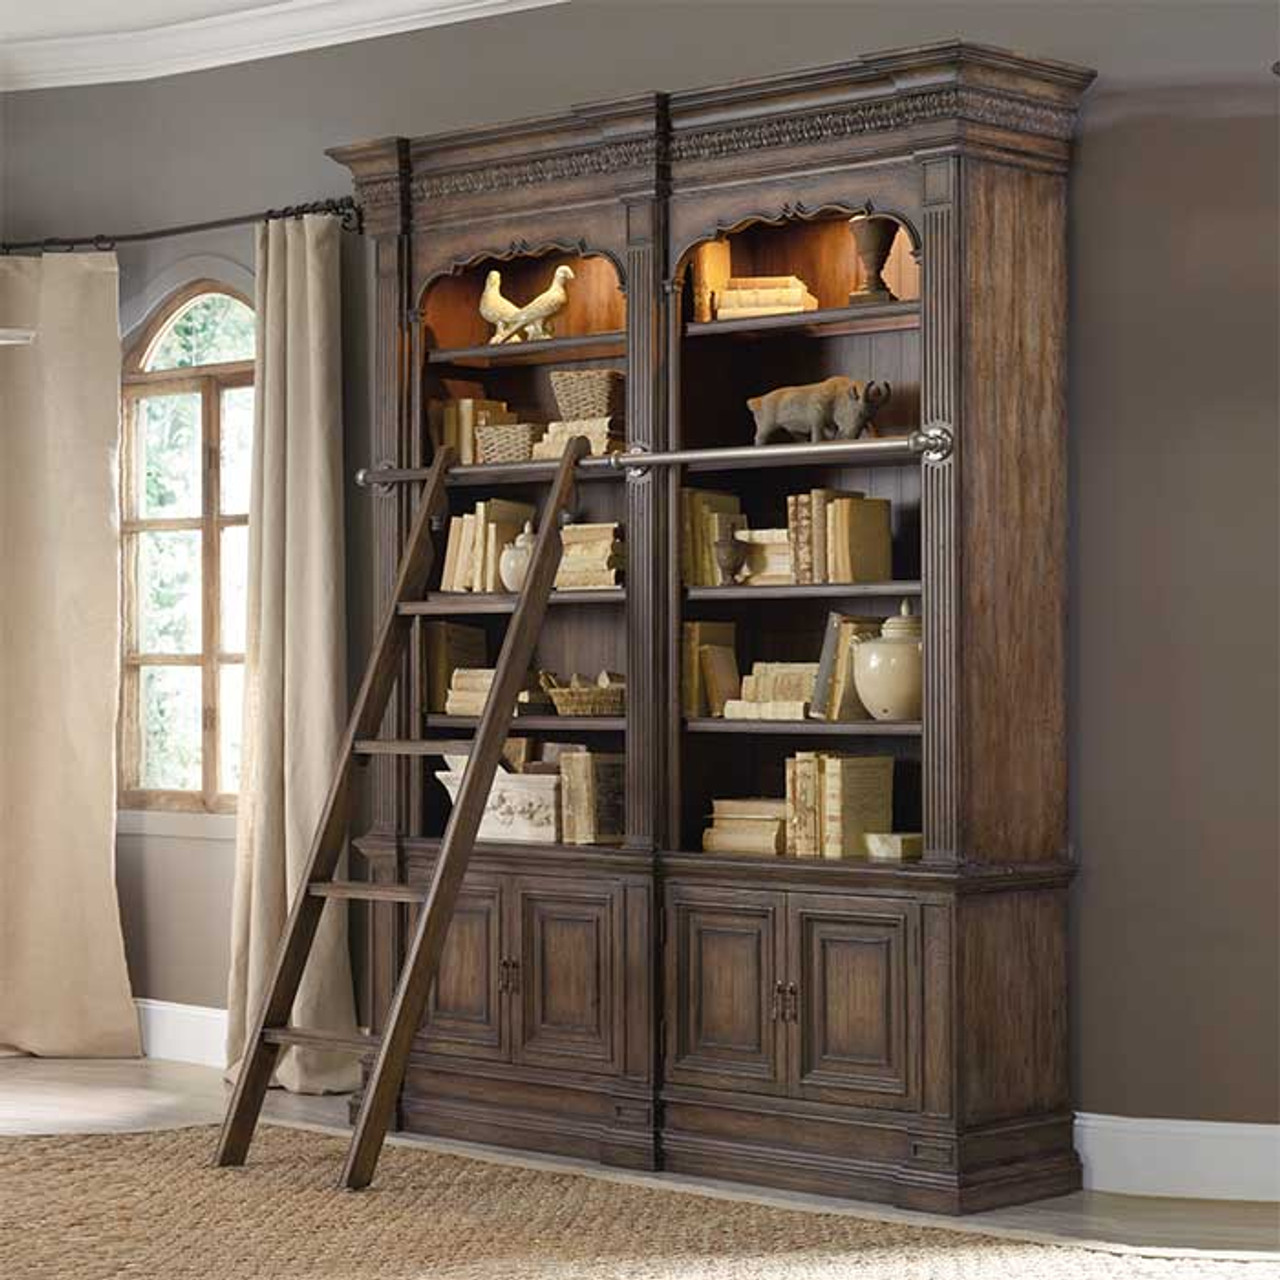 Renee S Double Bookcase Ladder And Rail Option